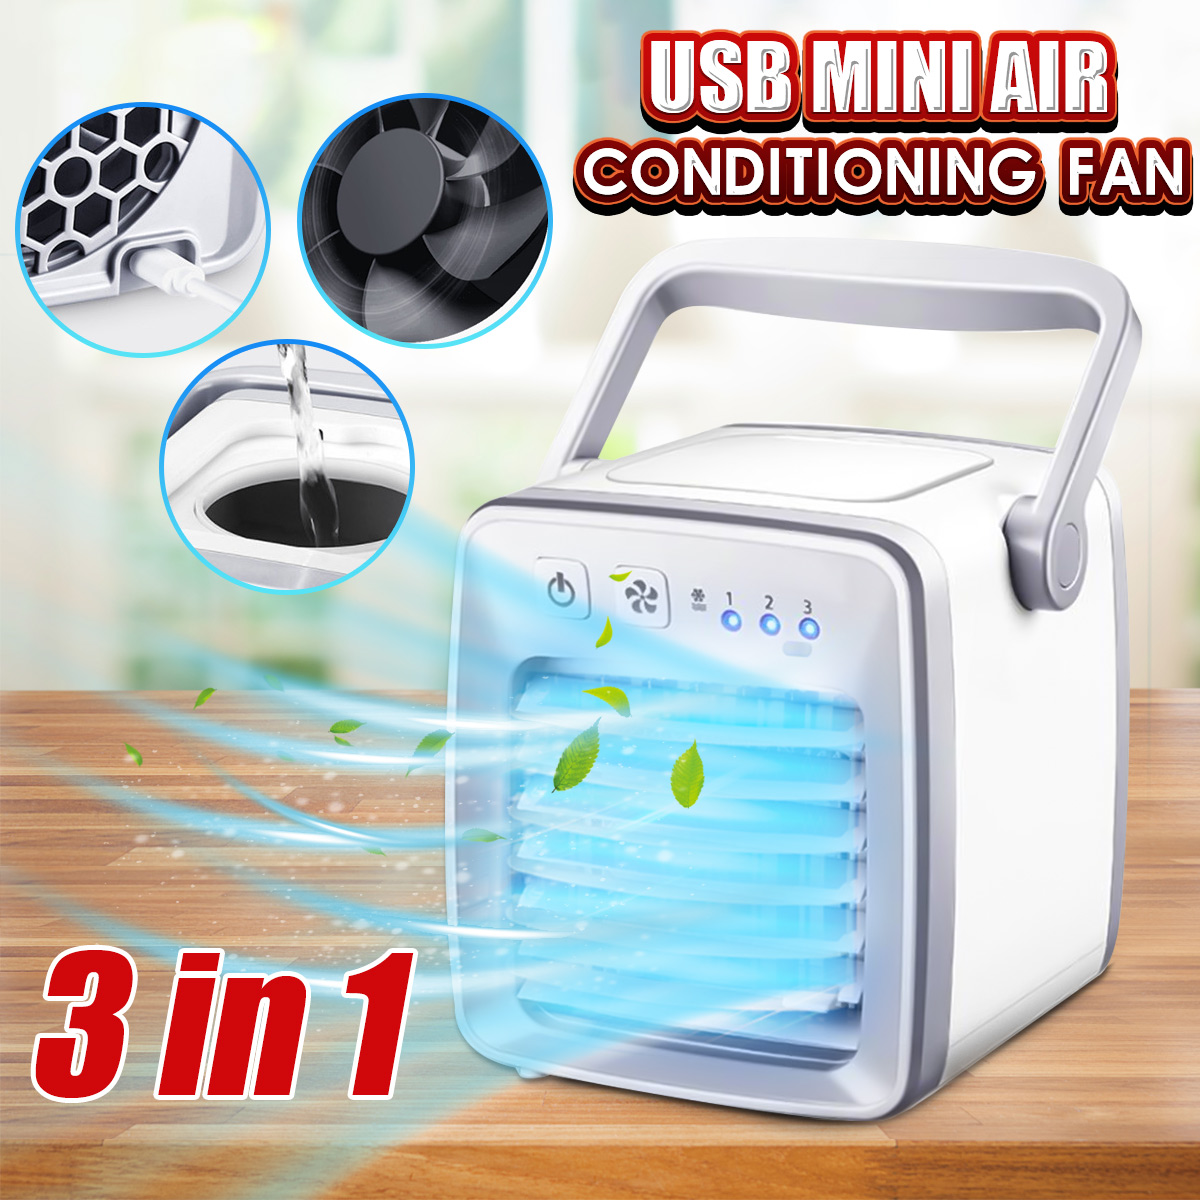 Home USB Mini Air Conditioning Fan Air Cooler Portable Desktop Outdoor Summer Cooling Fans 80w air conditioning fans air cooling